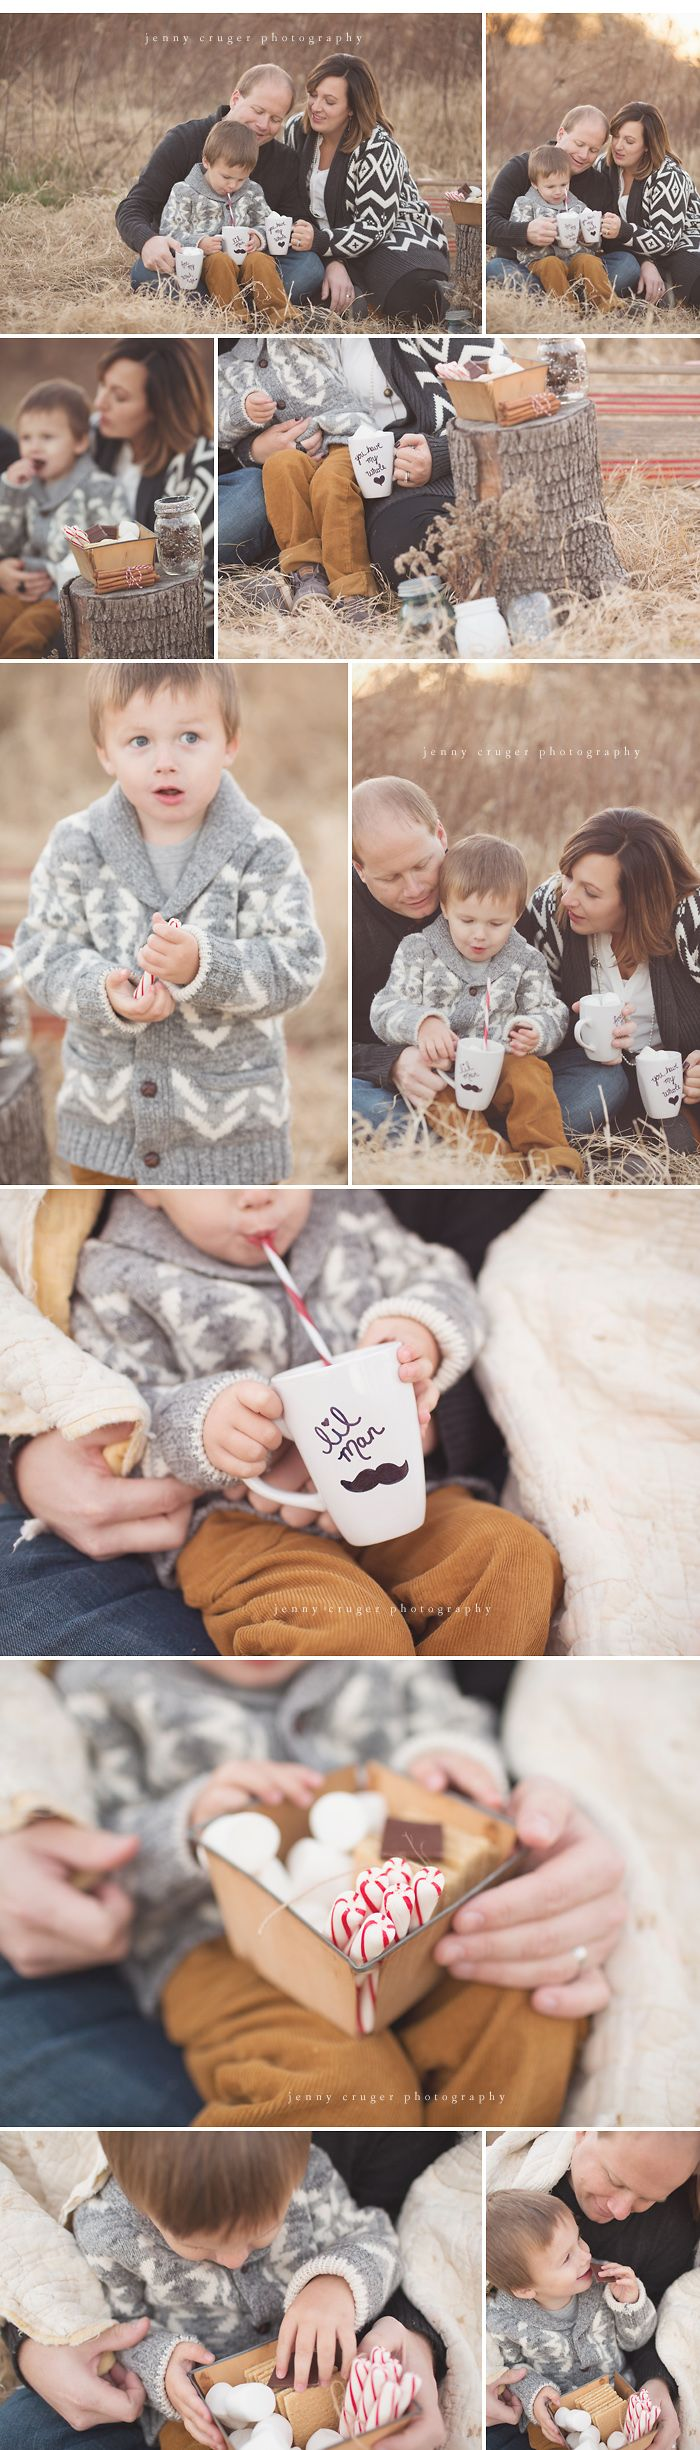 Winter shoot theme: Hot cocoa + sweaters! franklin tn child photographer | Cozy | jenny cruger photography